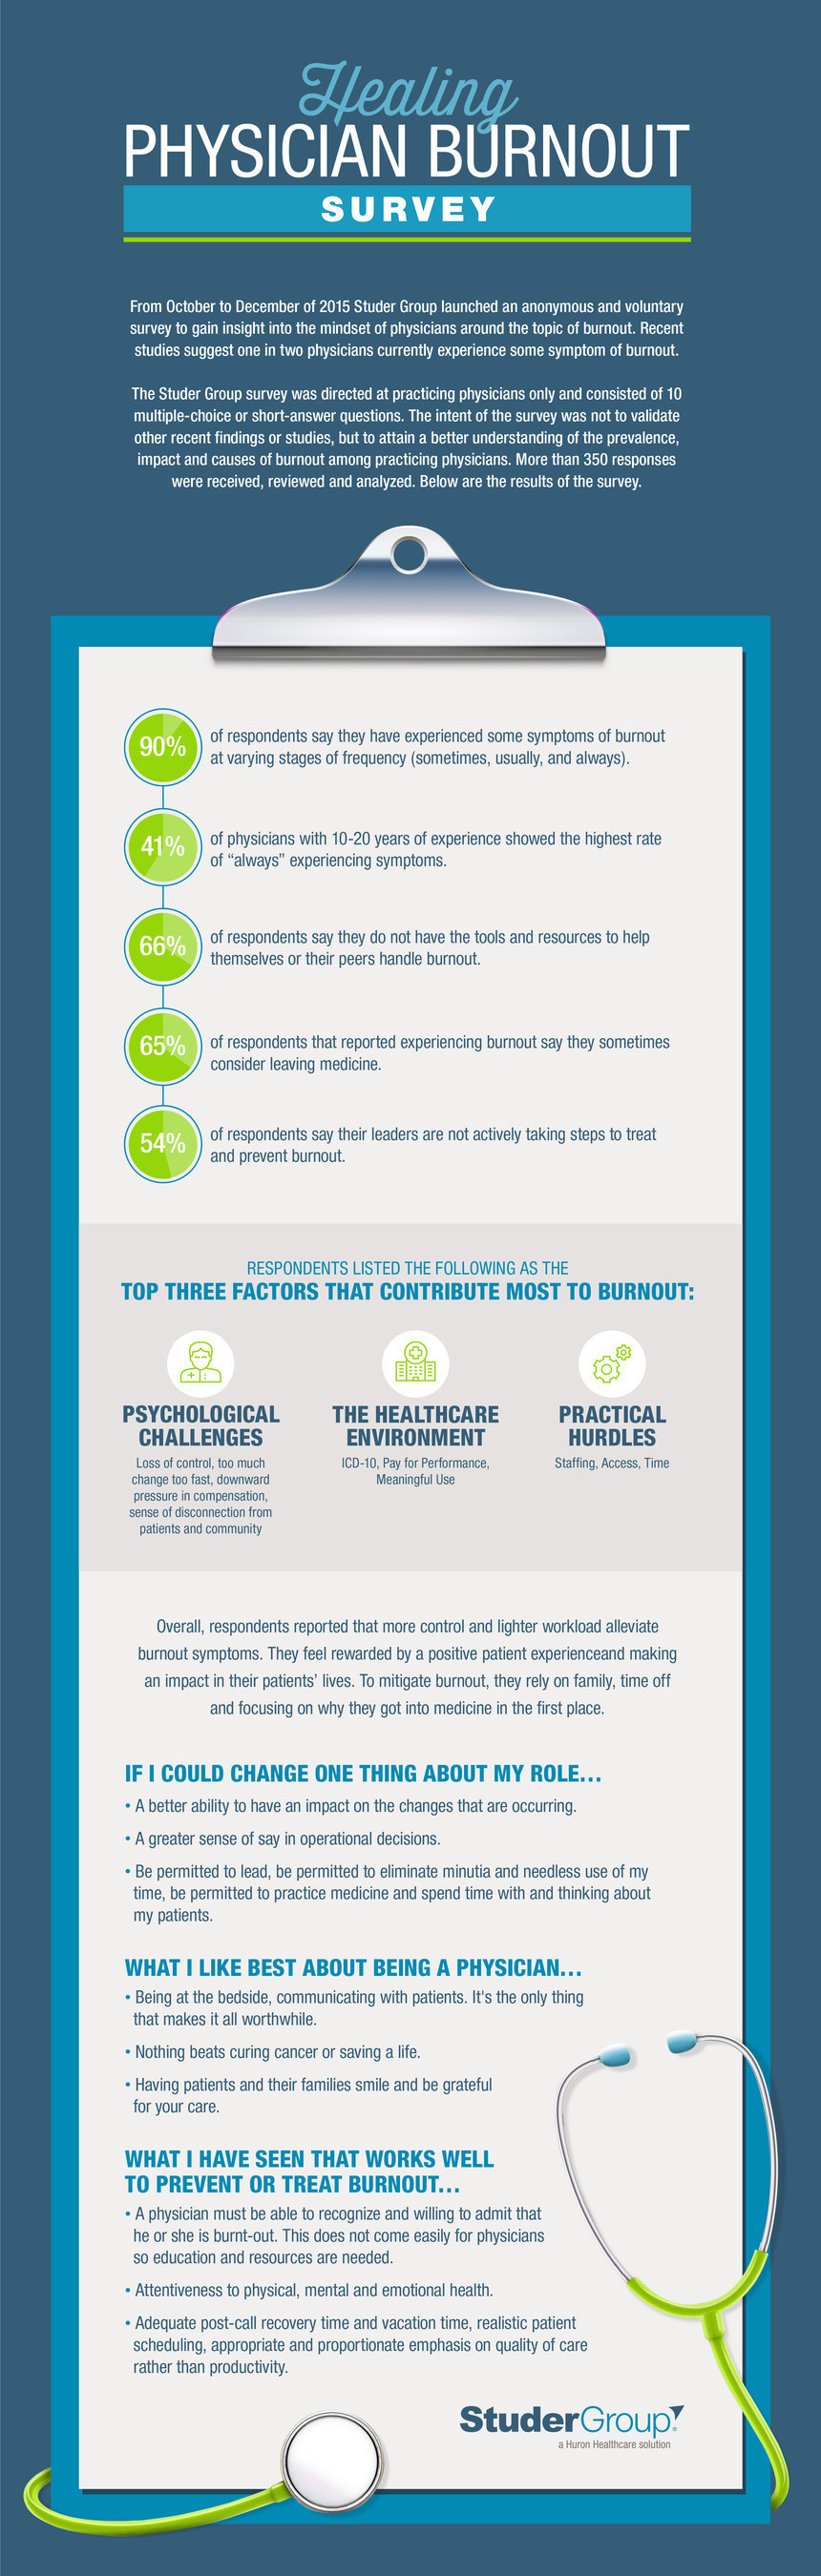 Studer Group, a Huron Healthcare Solution shares the results of a Healing Physician Burnout Survey. Ninety-percent of respondents reported experiencing some symptoms of burnout.